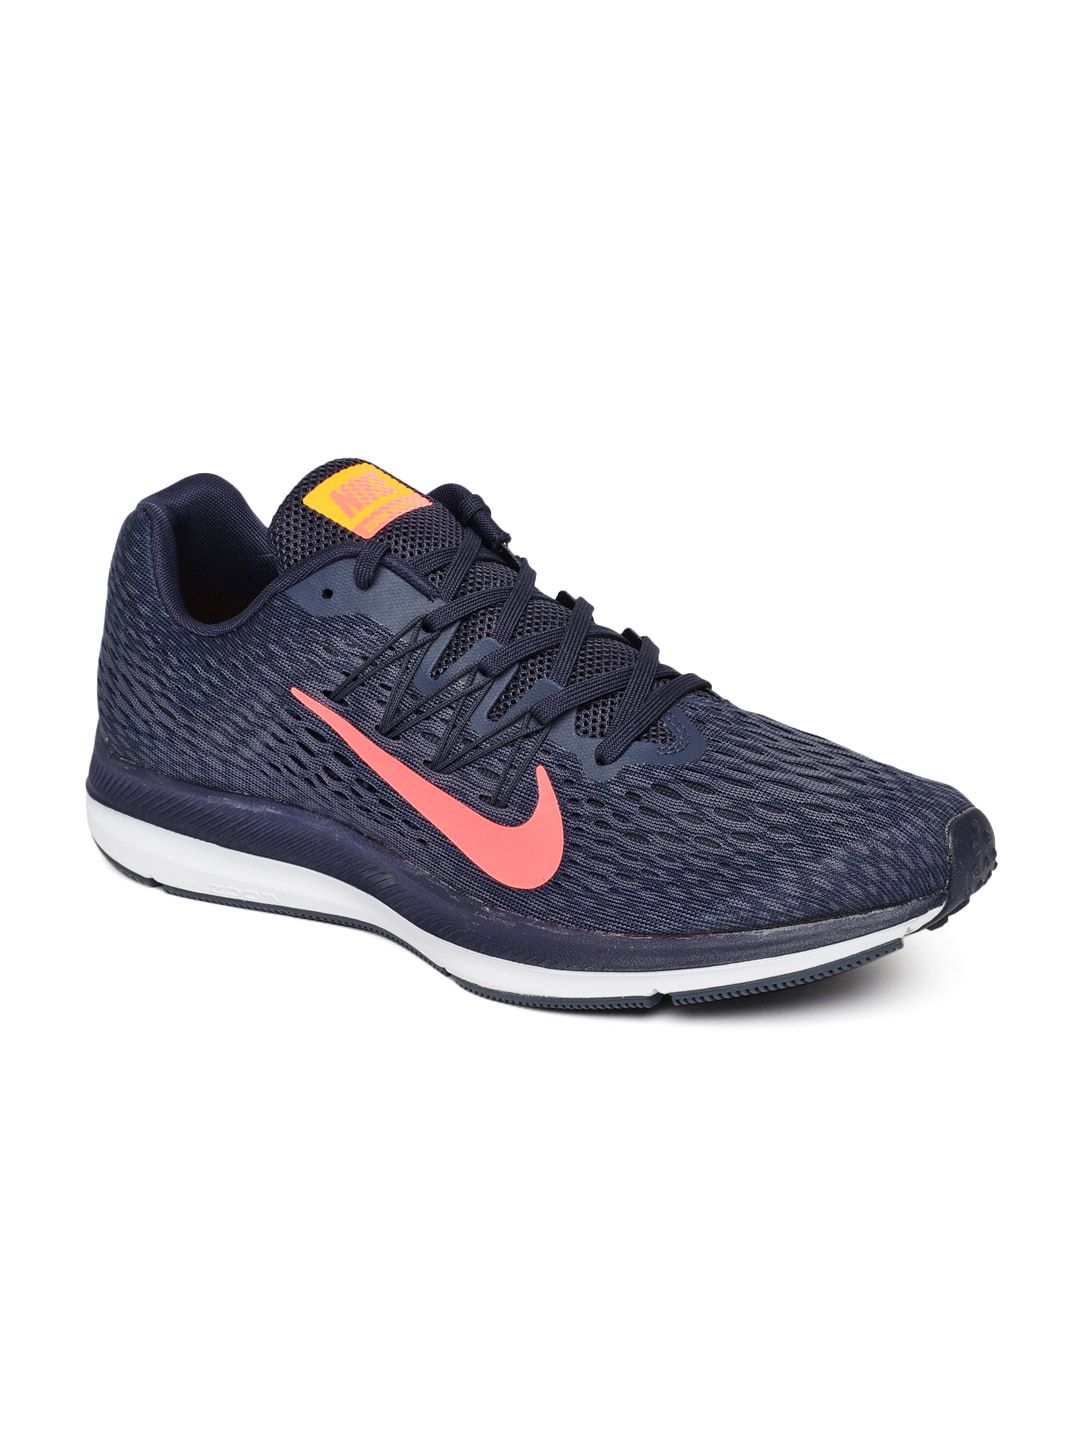 Nike Shoes - Buy Nike Shoes for Men   Women Online  e594148e5c51